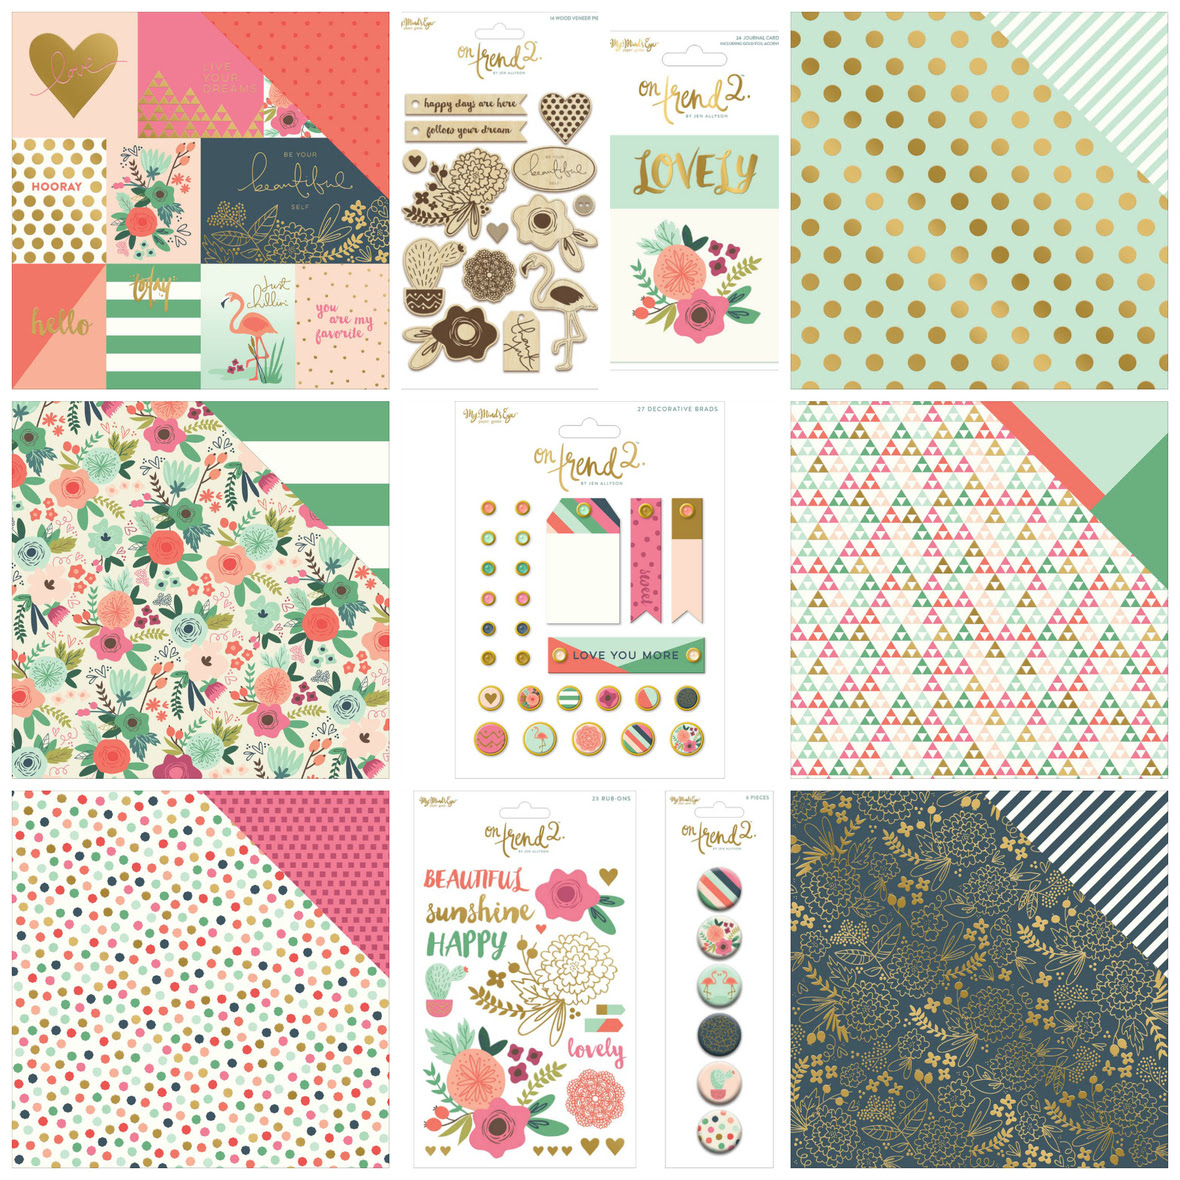 PicMonkey Collage on trend 2